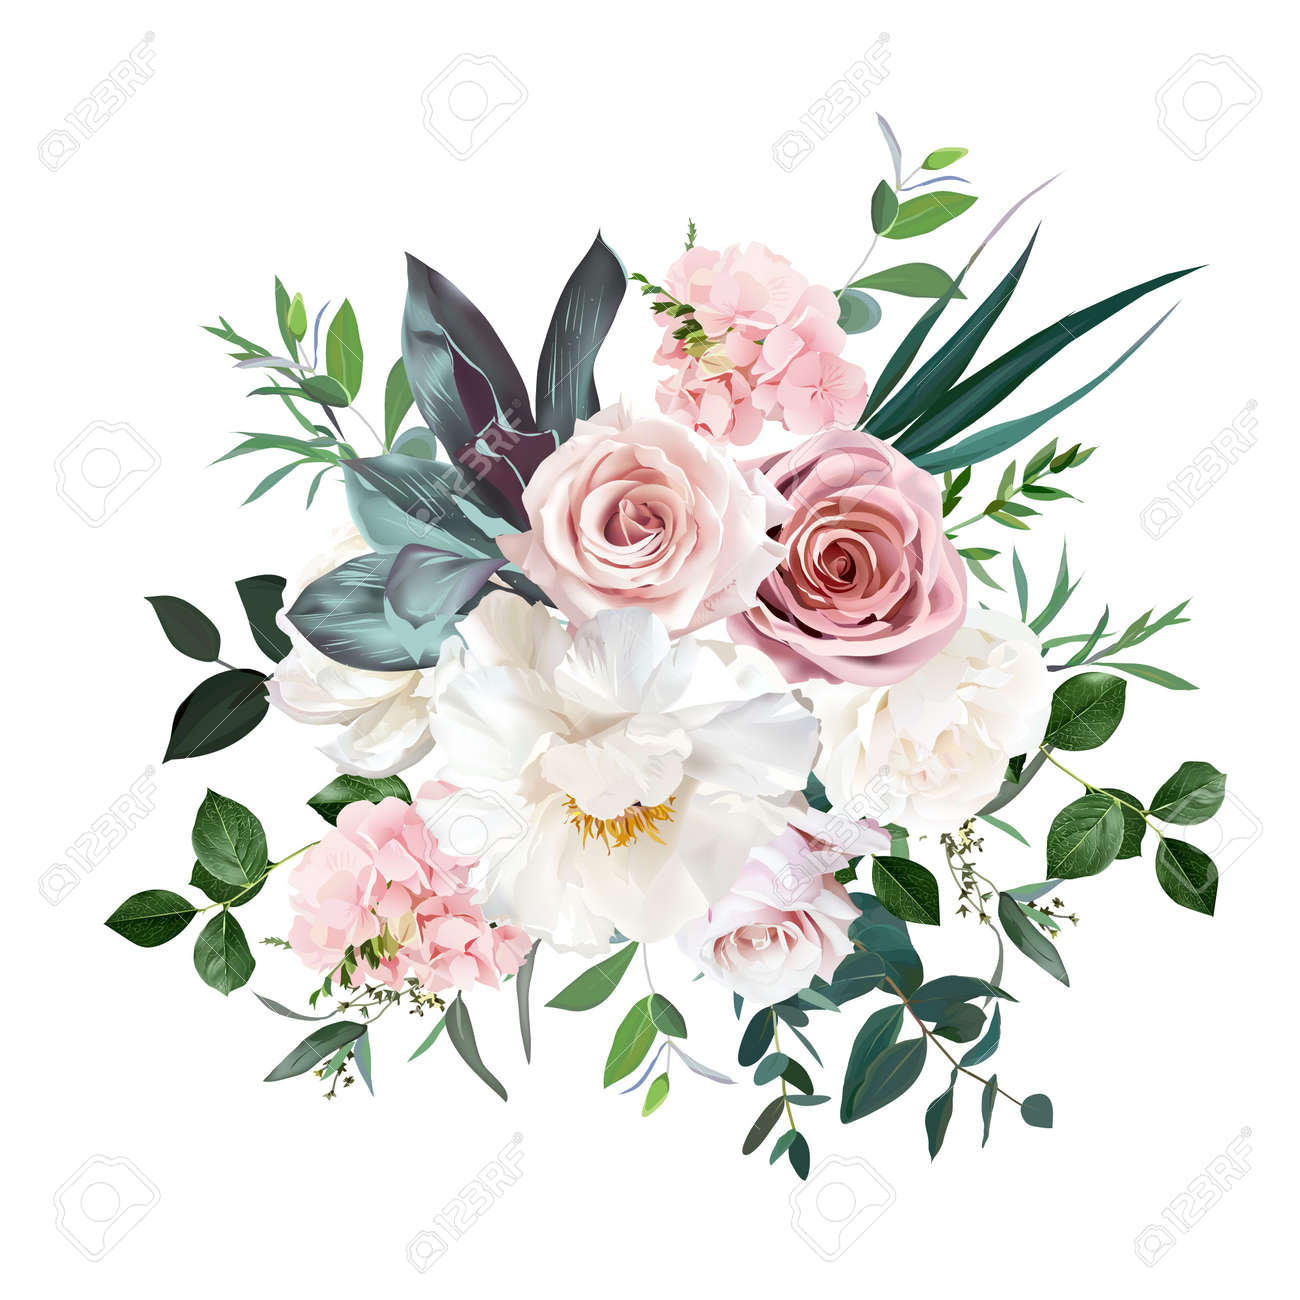 Dusty pink and cream rose, peony, hydrangea flower, tropical leaves vector design wedding bouquet - 168760776